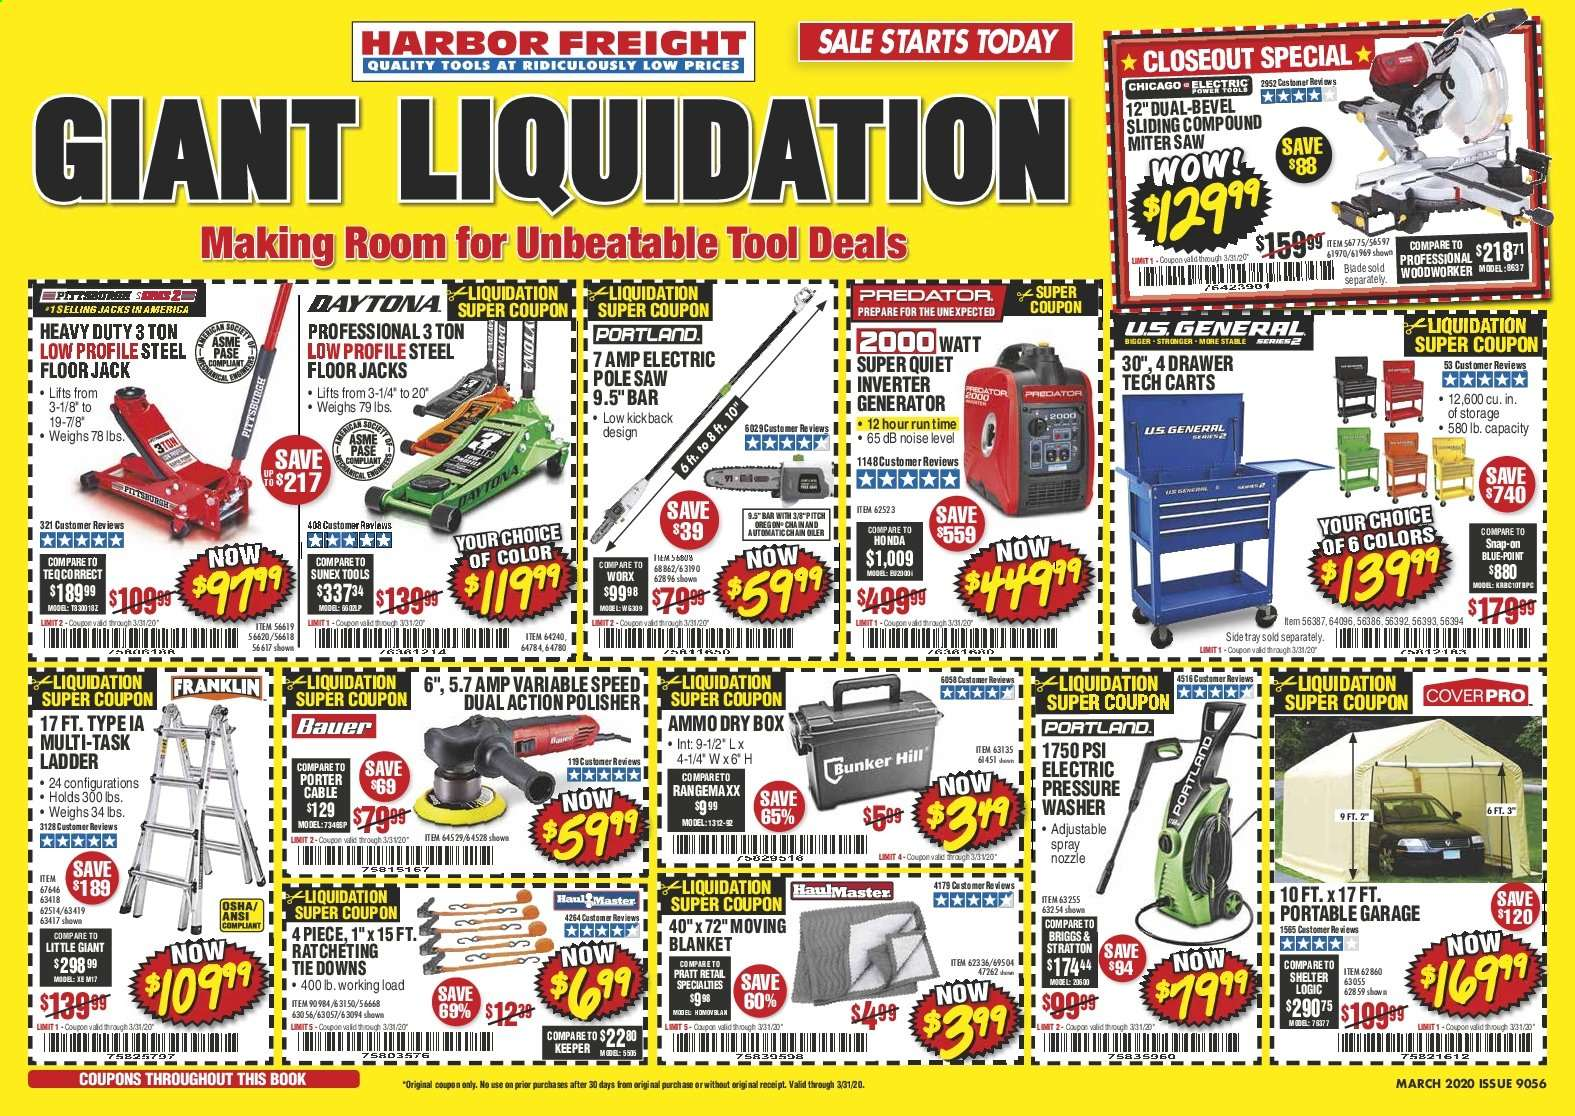 Harbor Freight Flyer  - 03.01.2020 - 03.31.2020. Page 1.